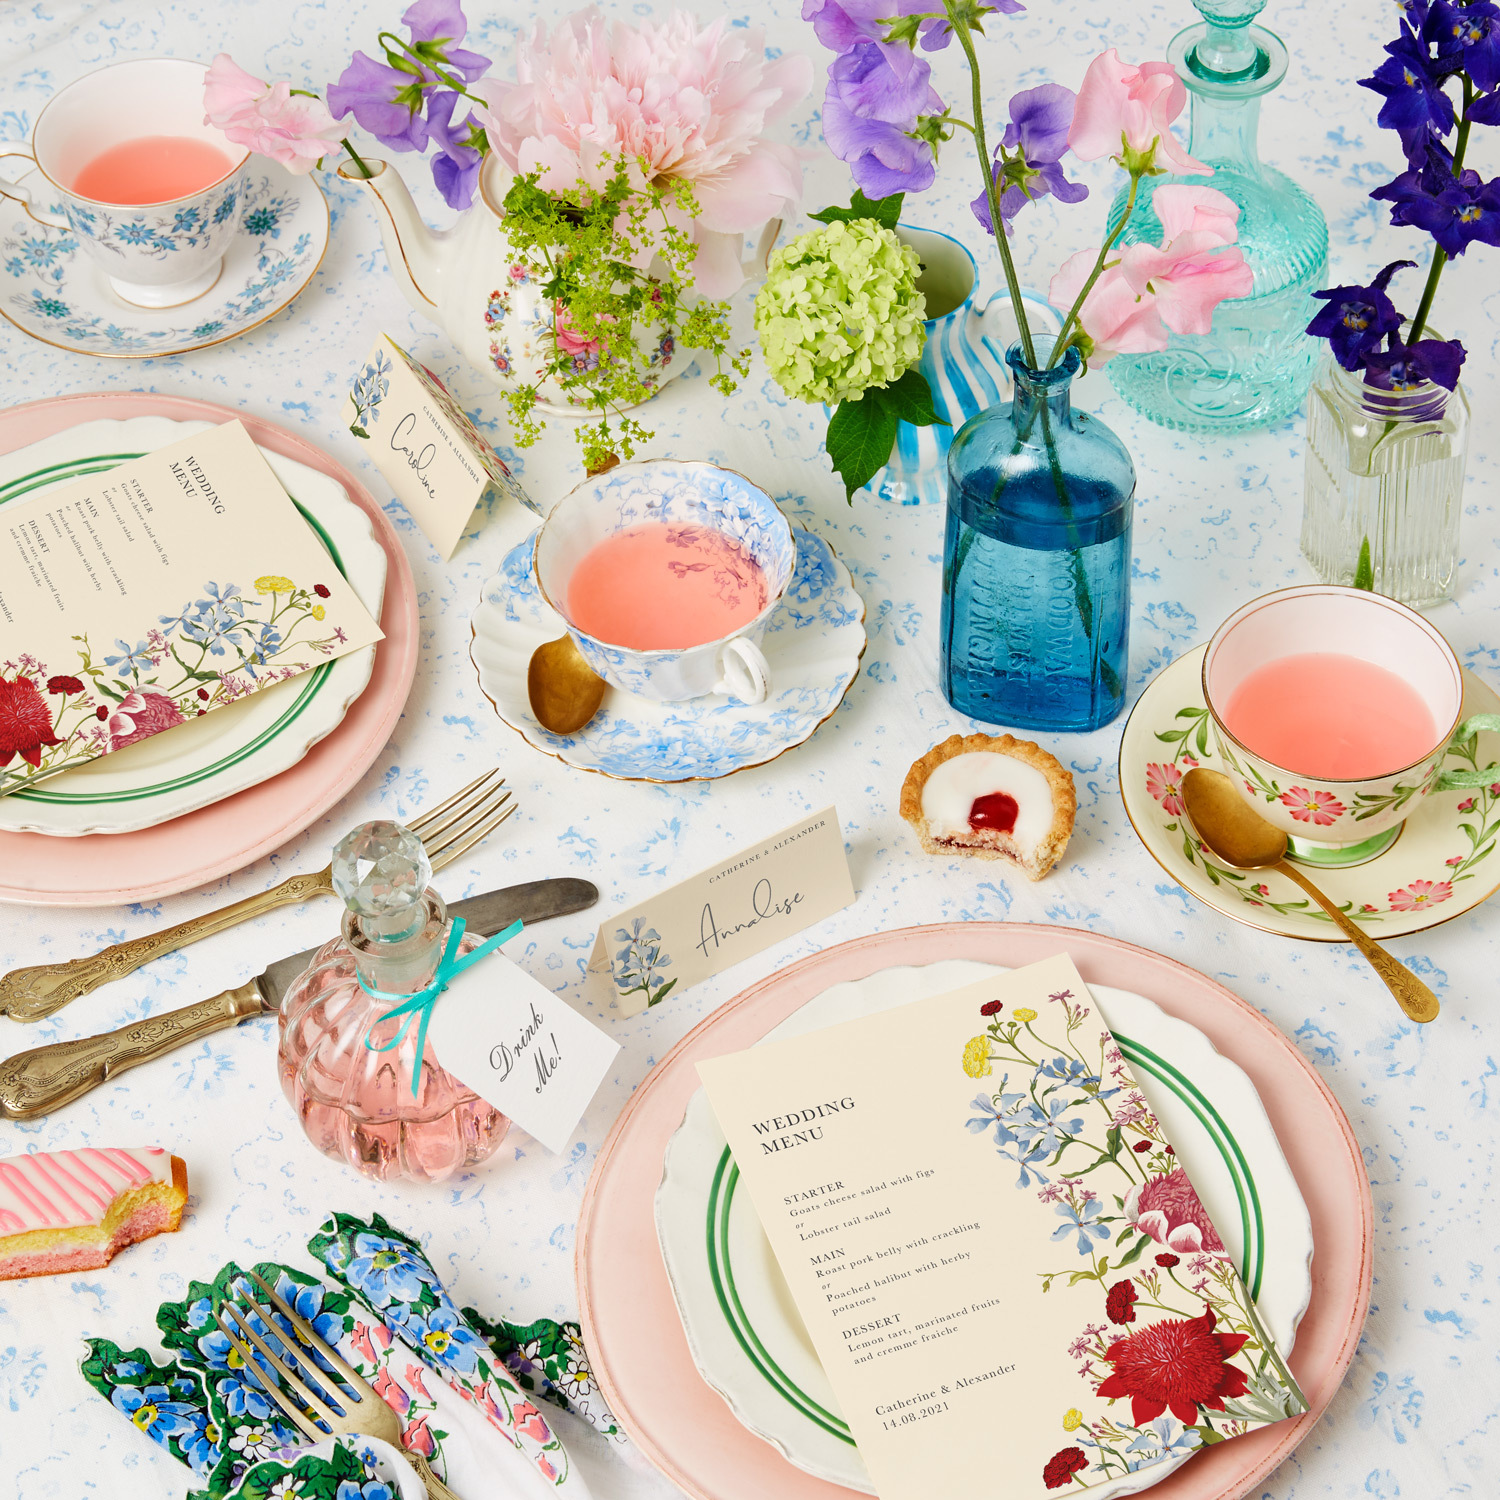 06.20_TheFold_WeddingTableSettings_VintageQuirky.jpg